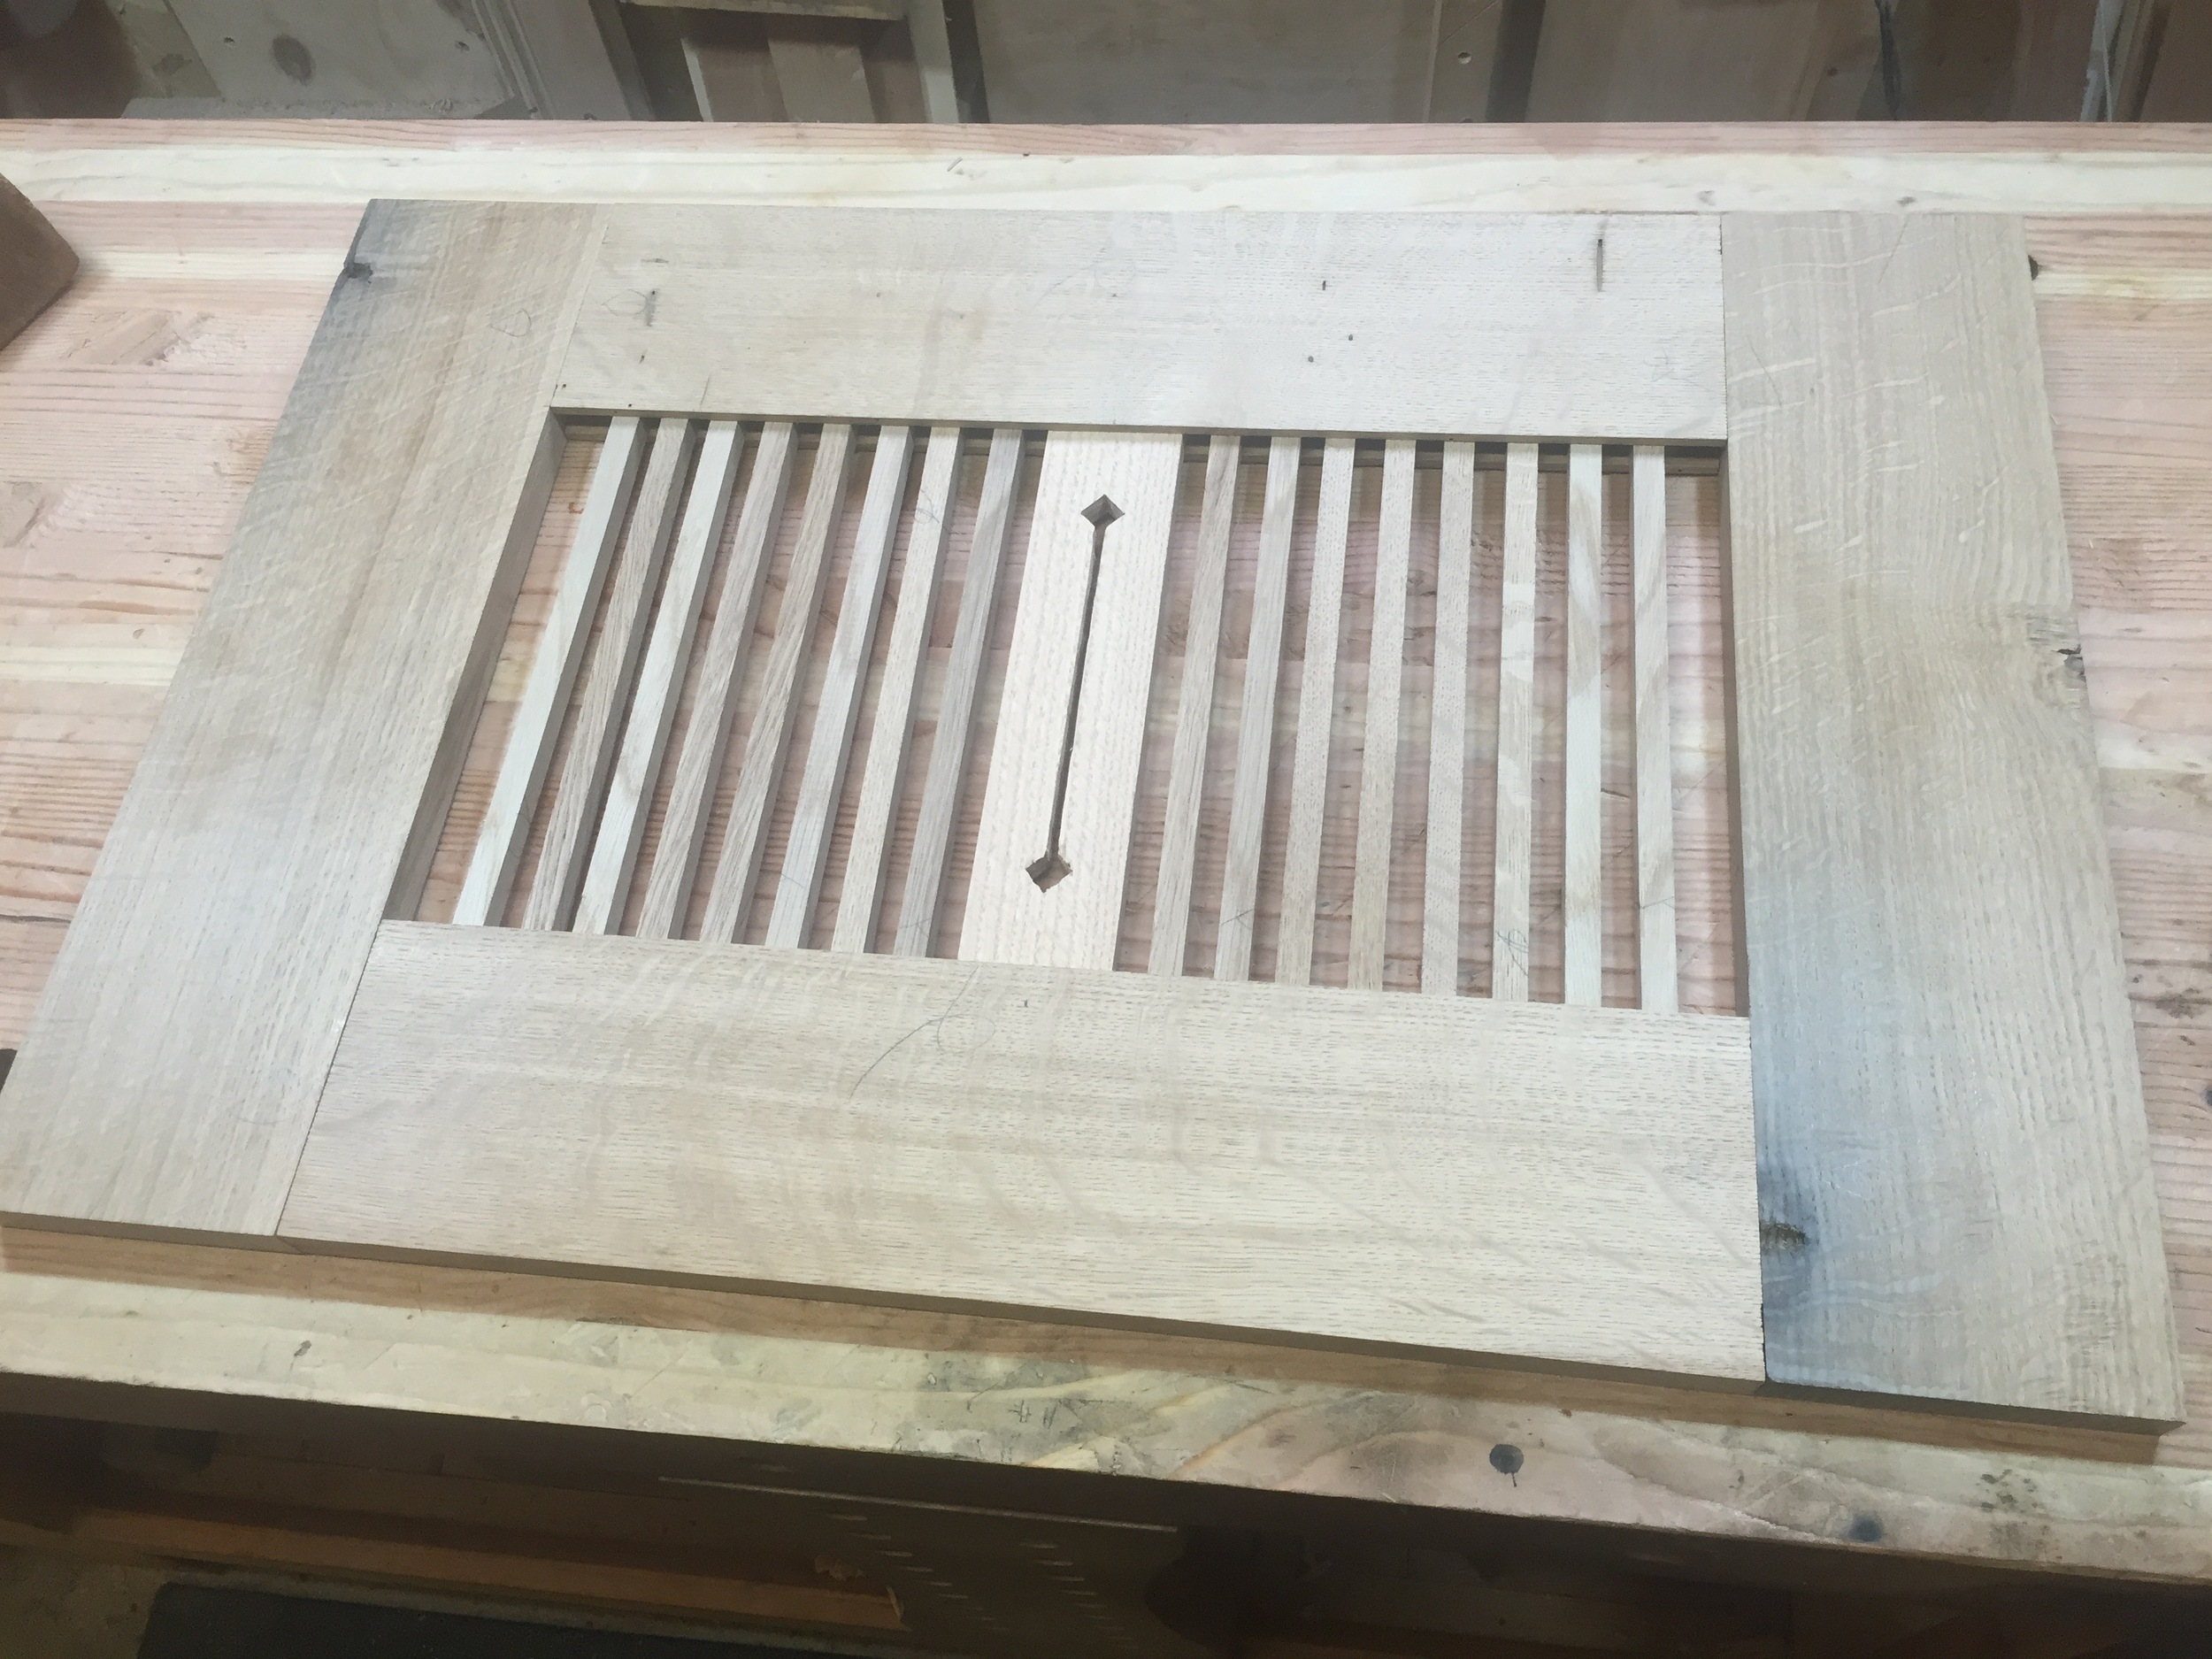 """Test build of the """"spindles"""" sides, with a decorative cutout slat in the middle, which I later ditched."""